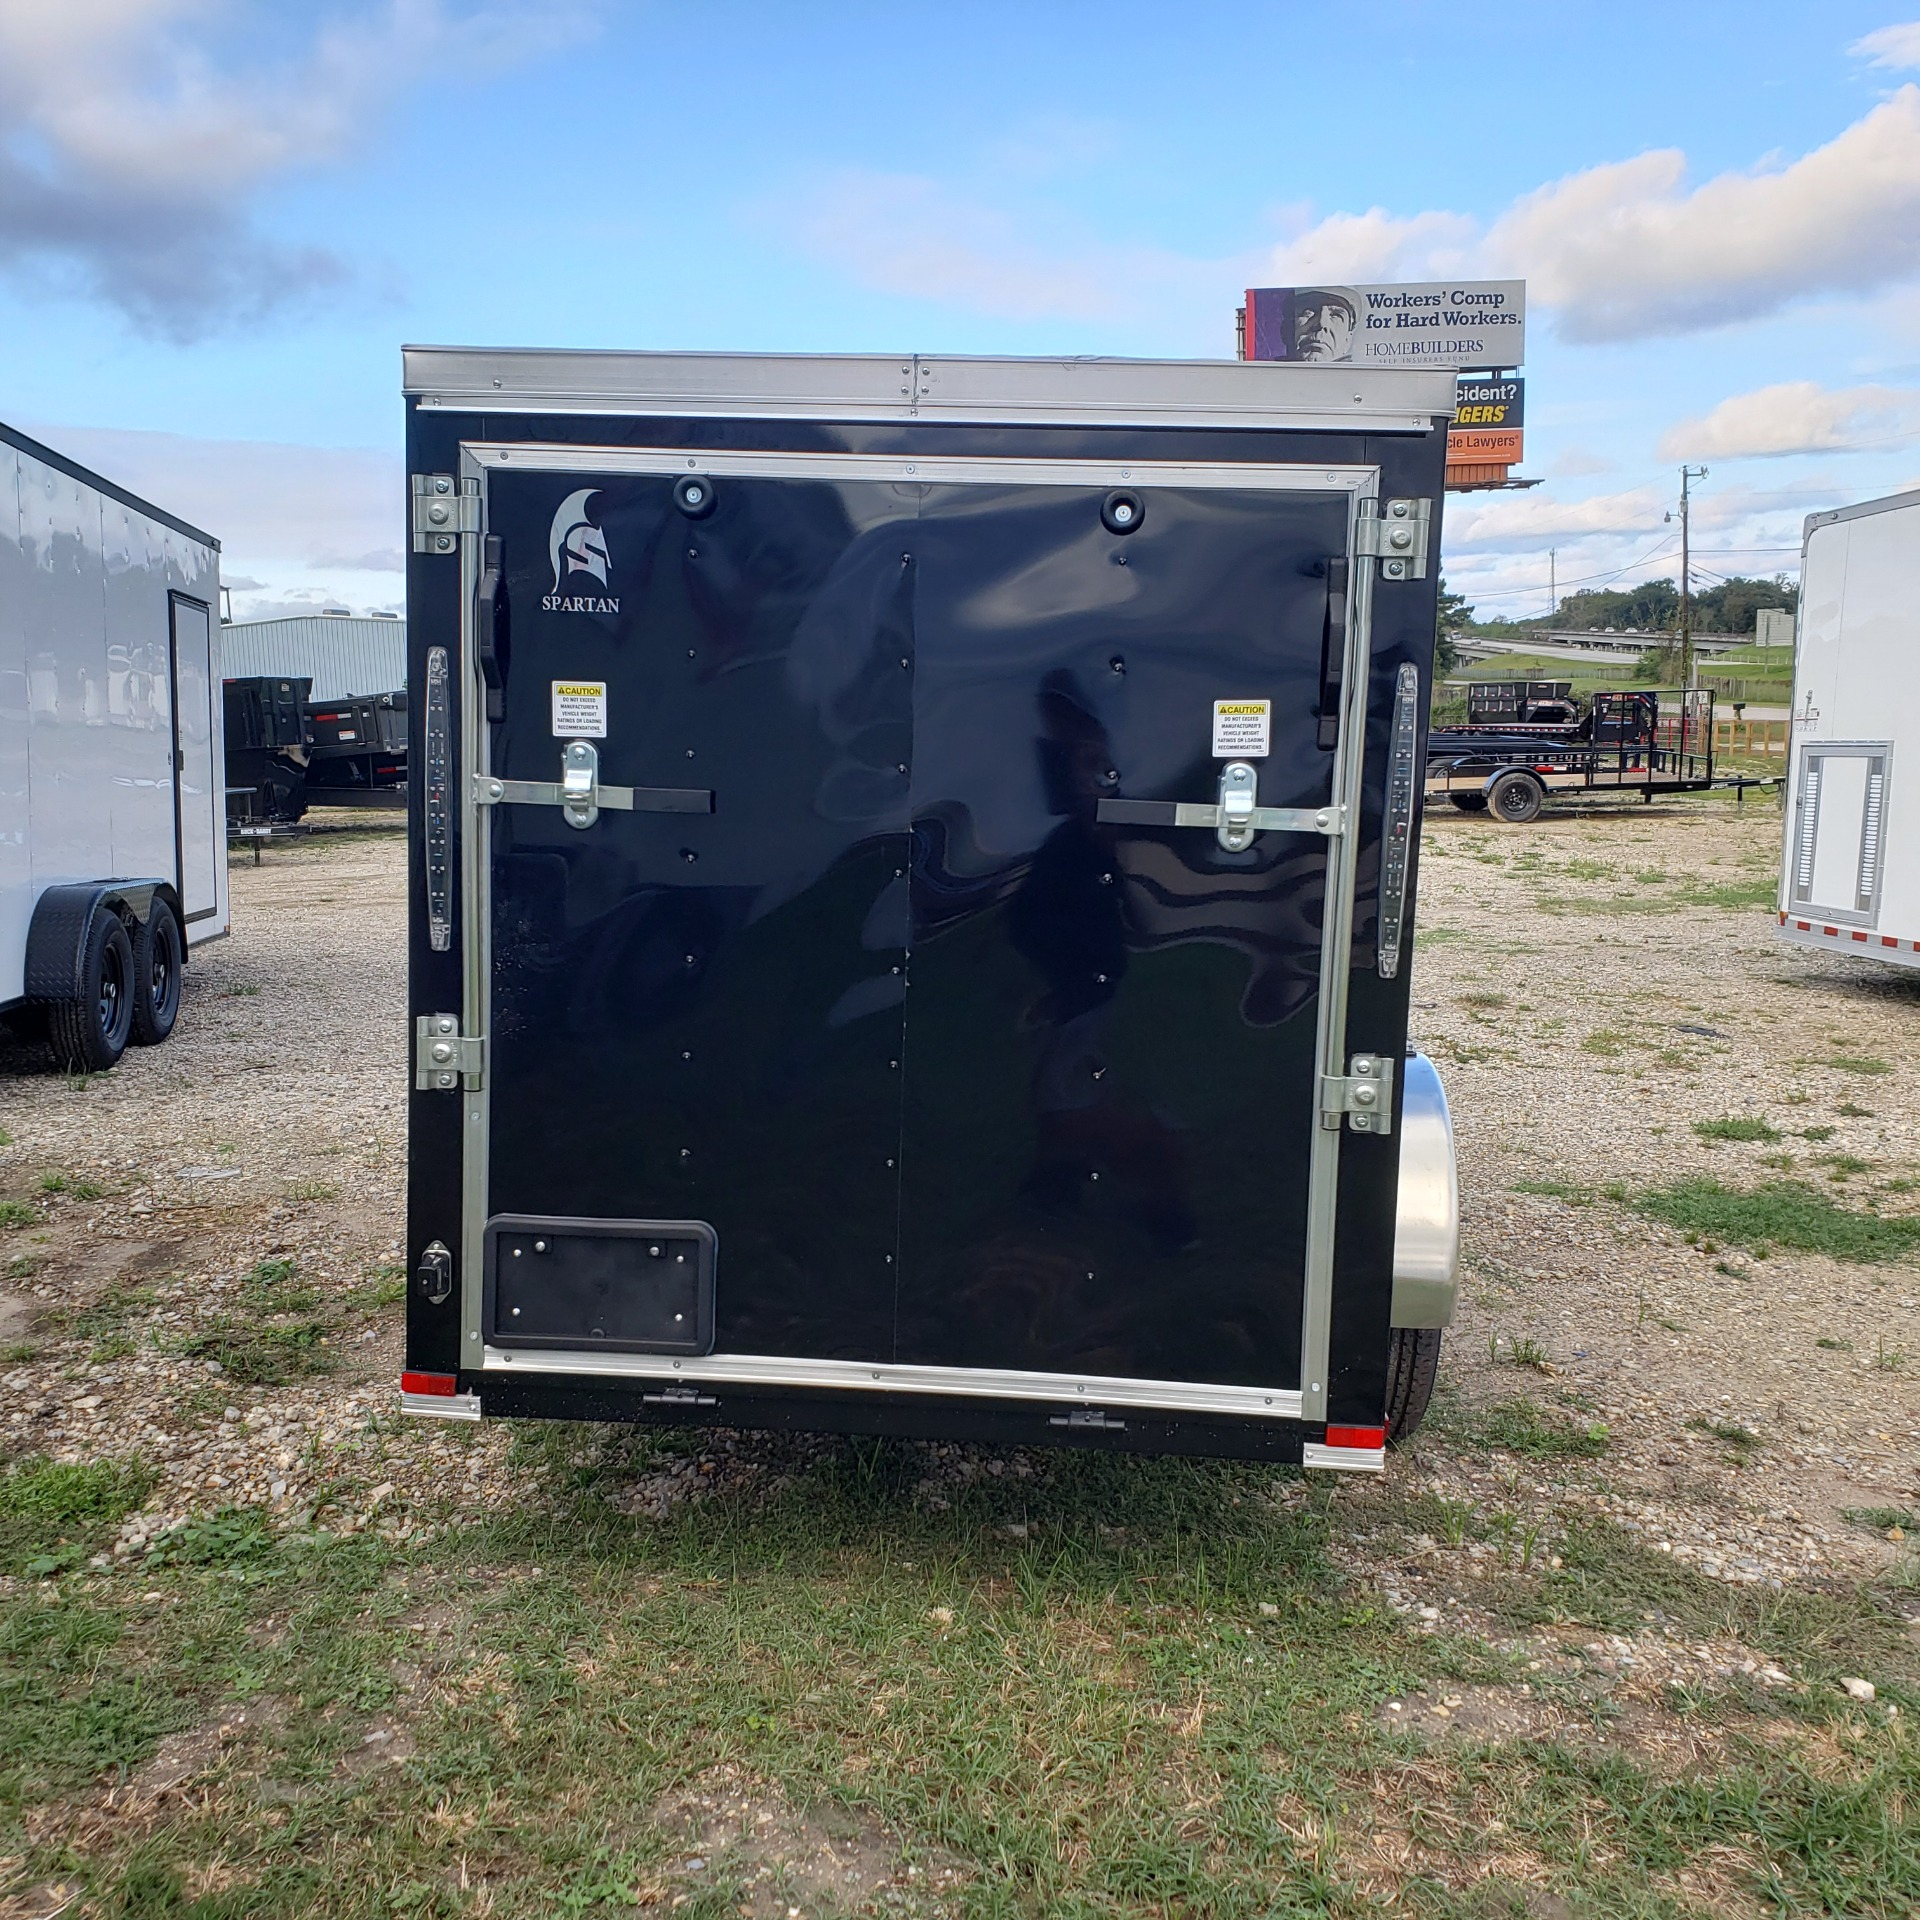 2020 Spartan Trailers 5 X 10 SPARTAN ENCLOSED TRAILER in Pearl River, Louisiana - Photo 2